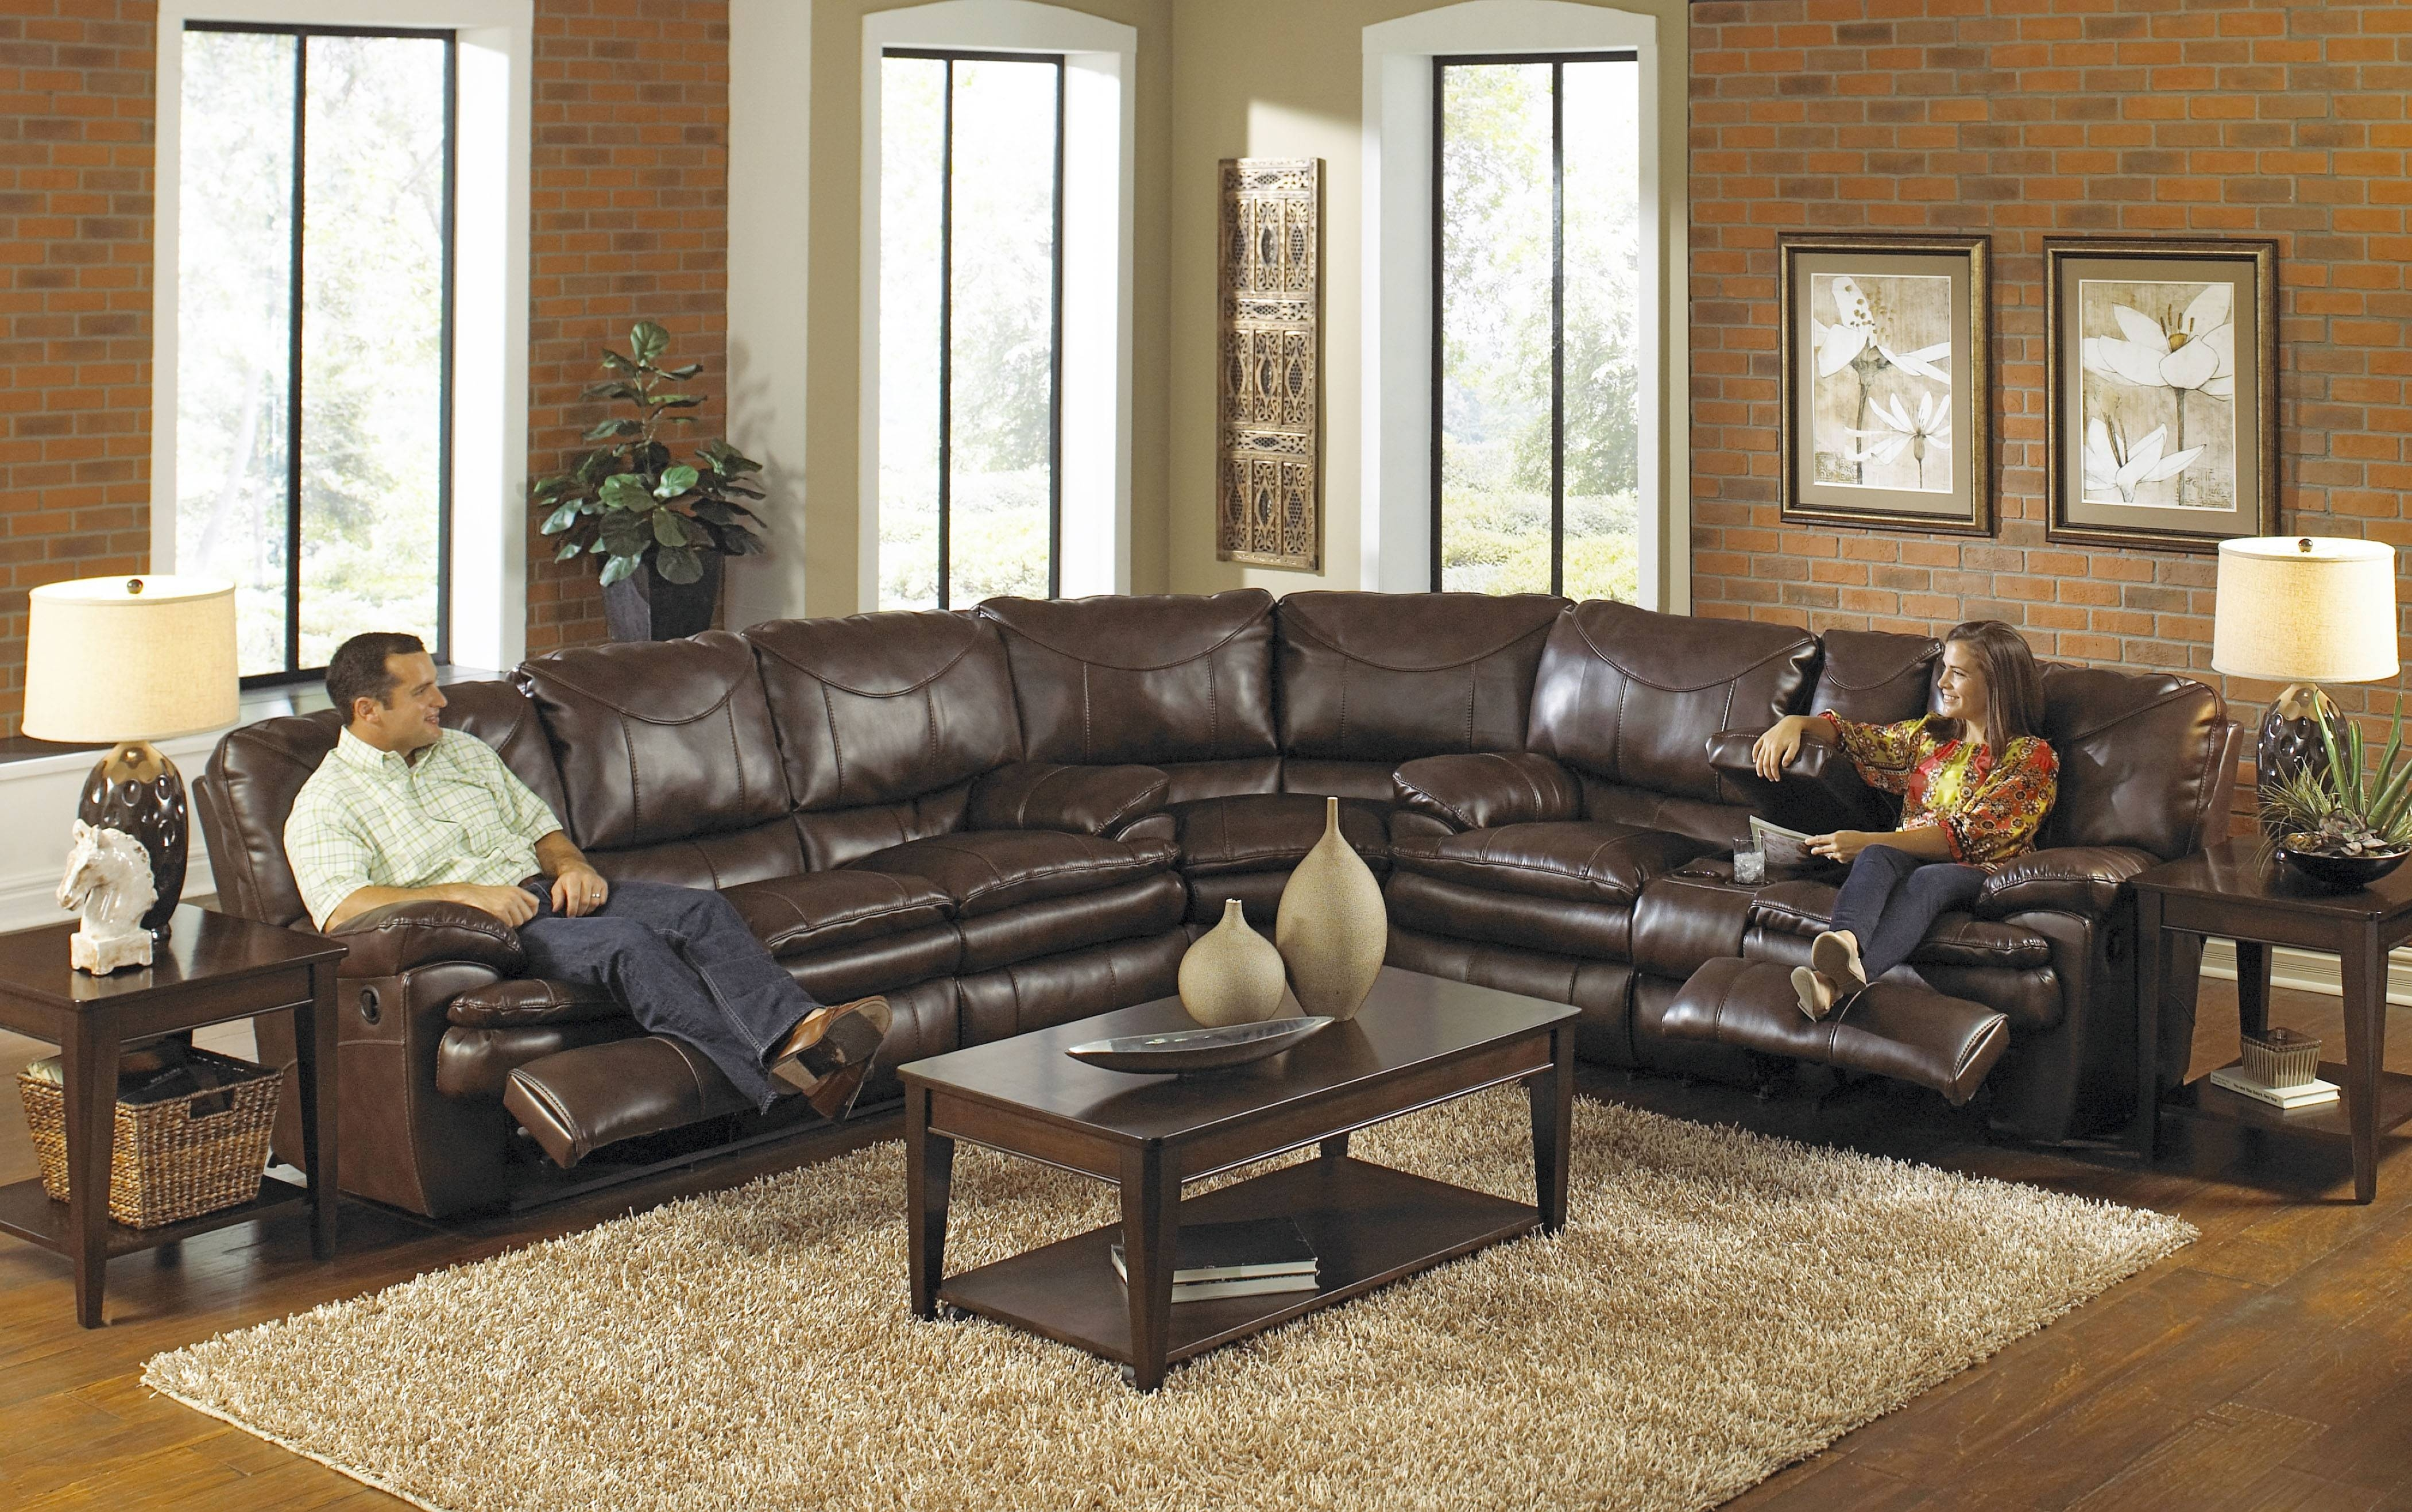 Beautiful Leather Sectional Sleeper Sofa With Recliners 37 For intended for Broyhill Sectional Sleeper Sofas (Image 4 of 15)